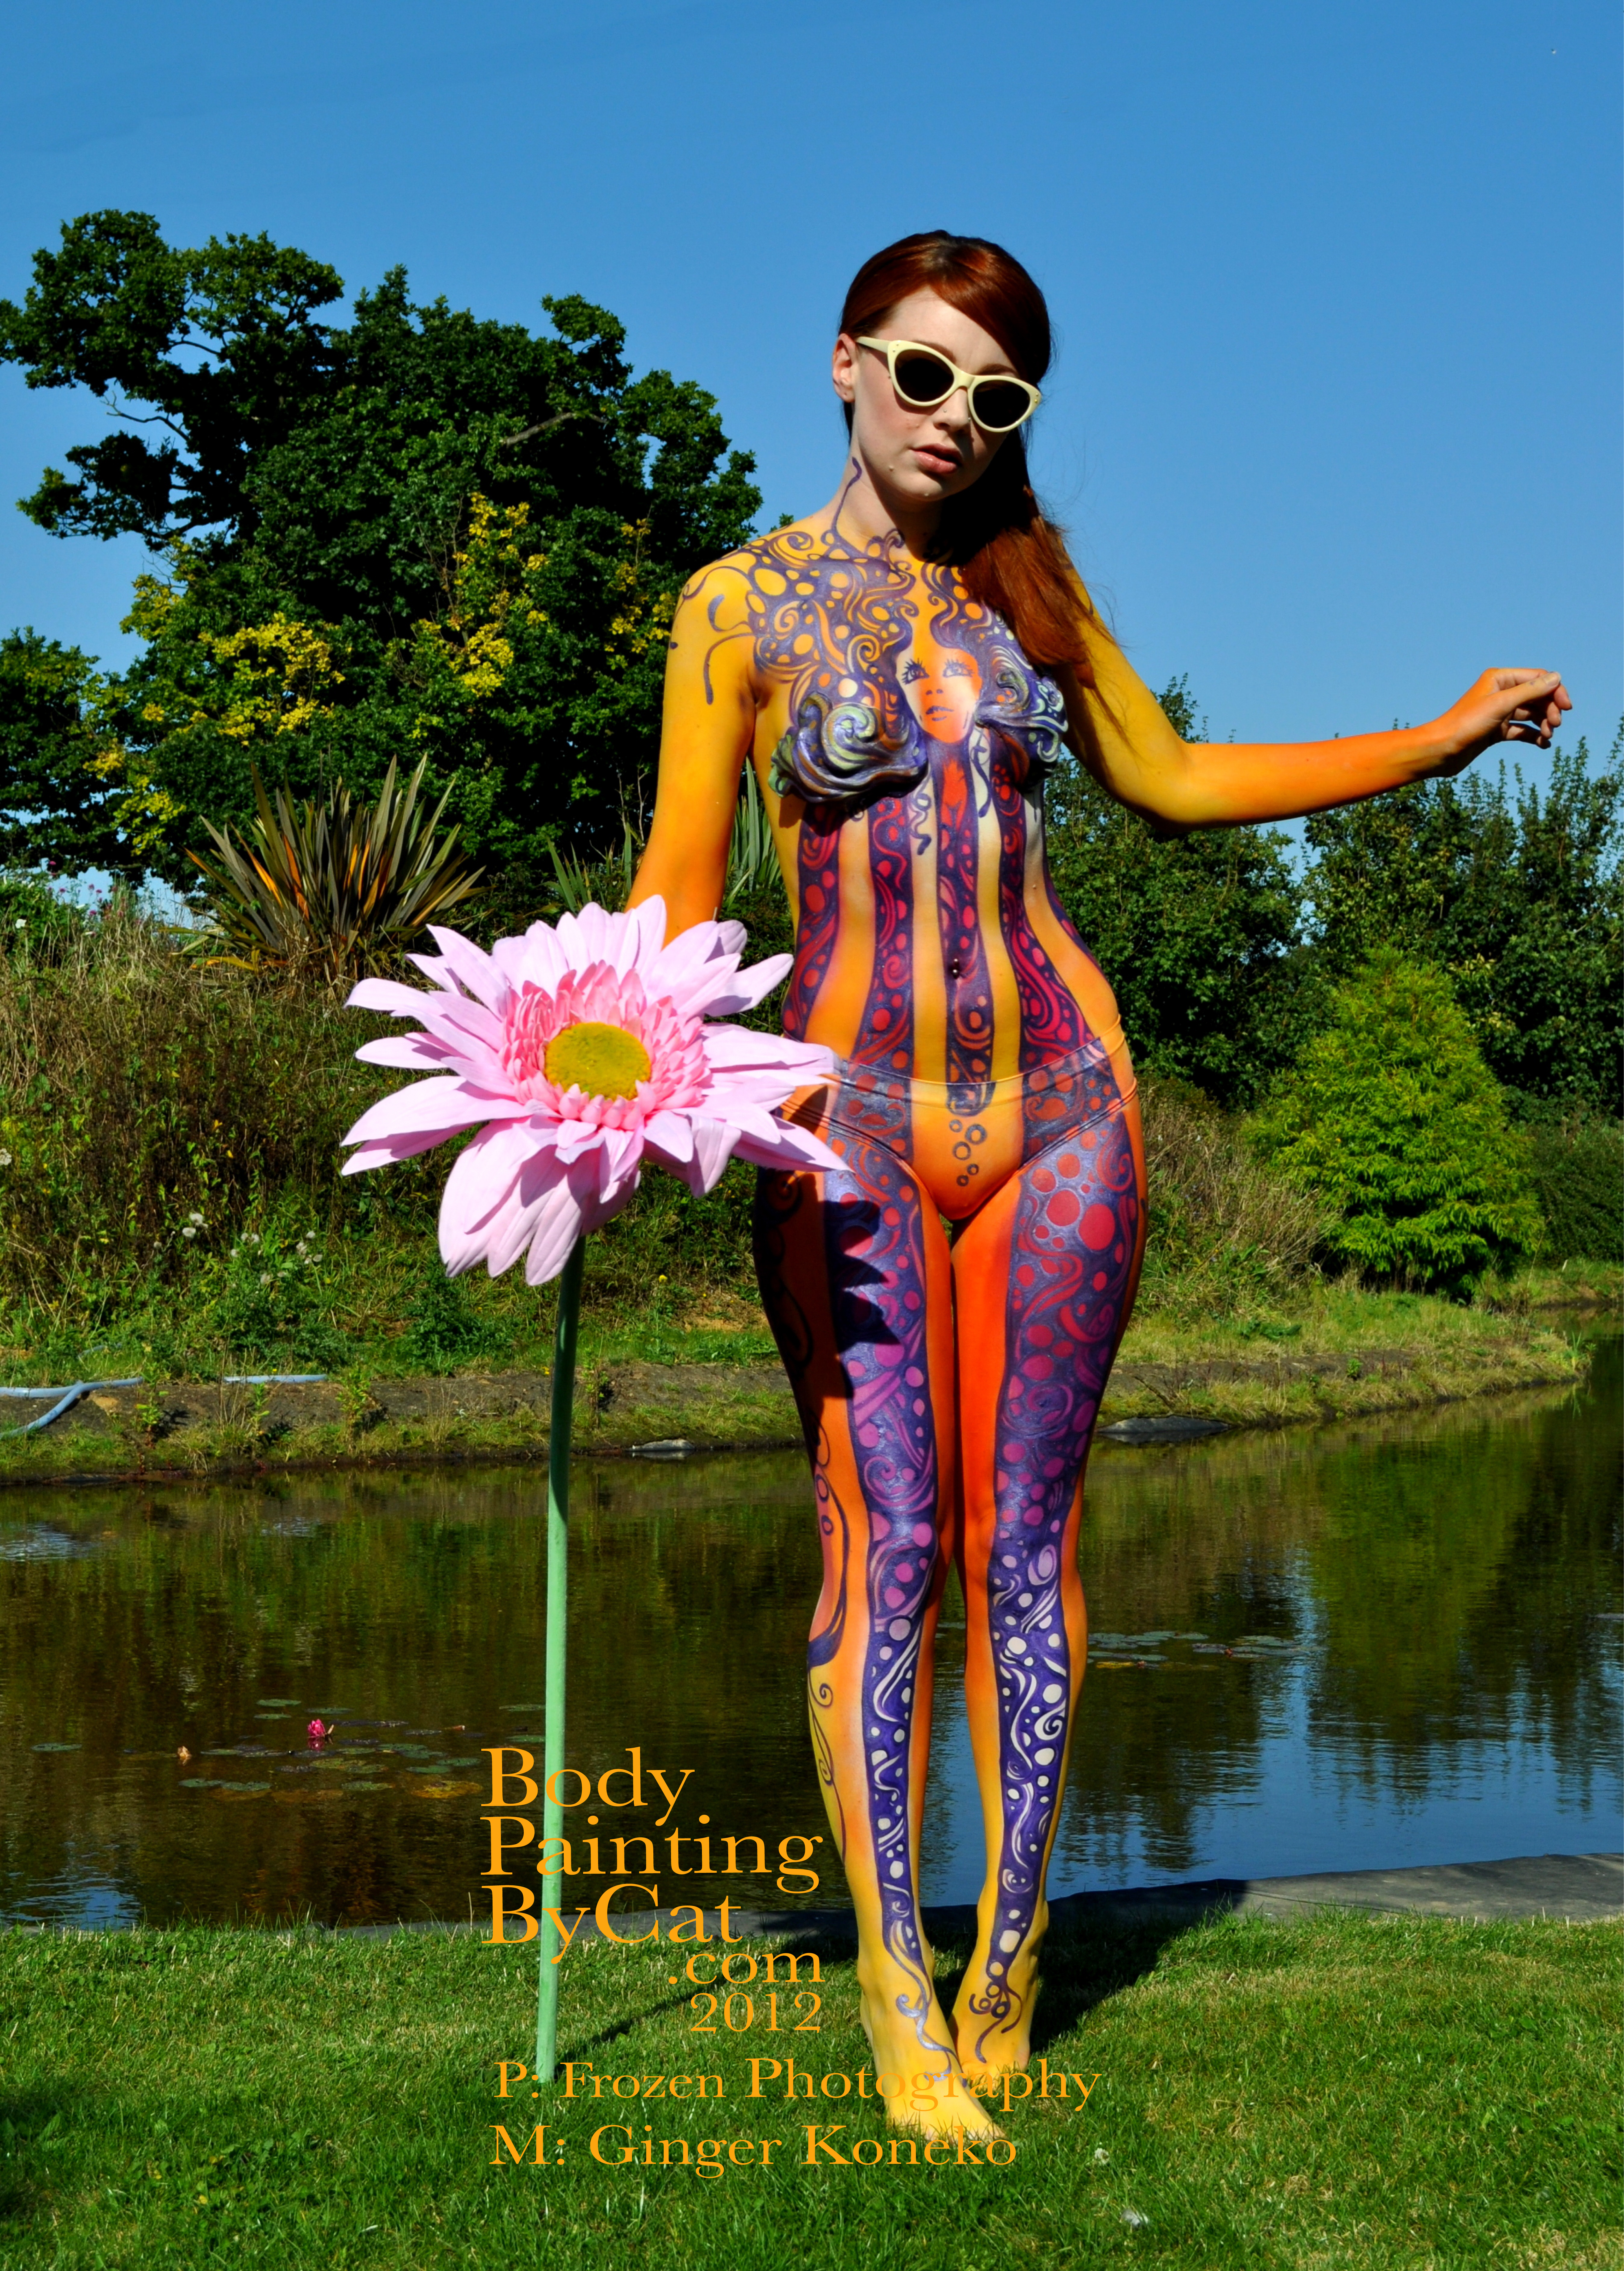 Hey Jude Sunies Flower Hold Bpc Body Painting By Cat